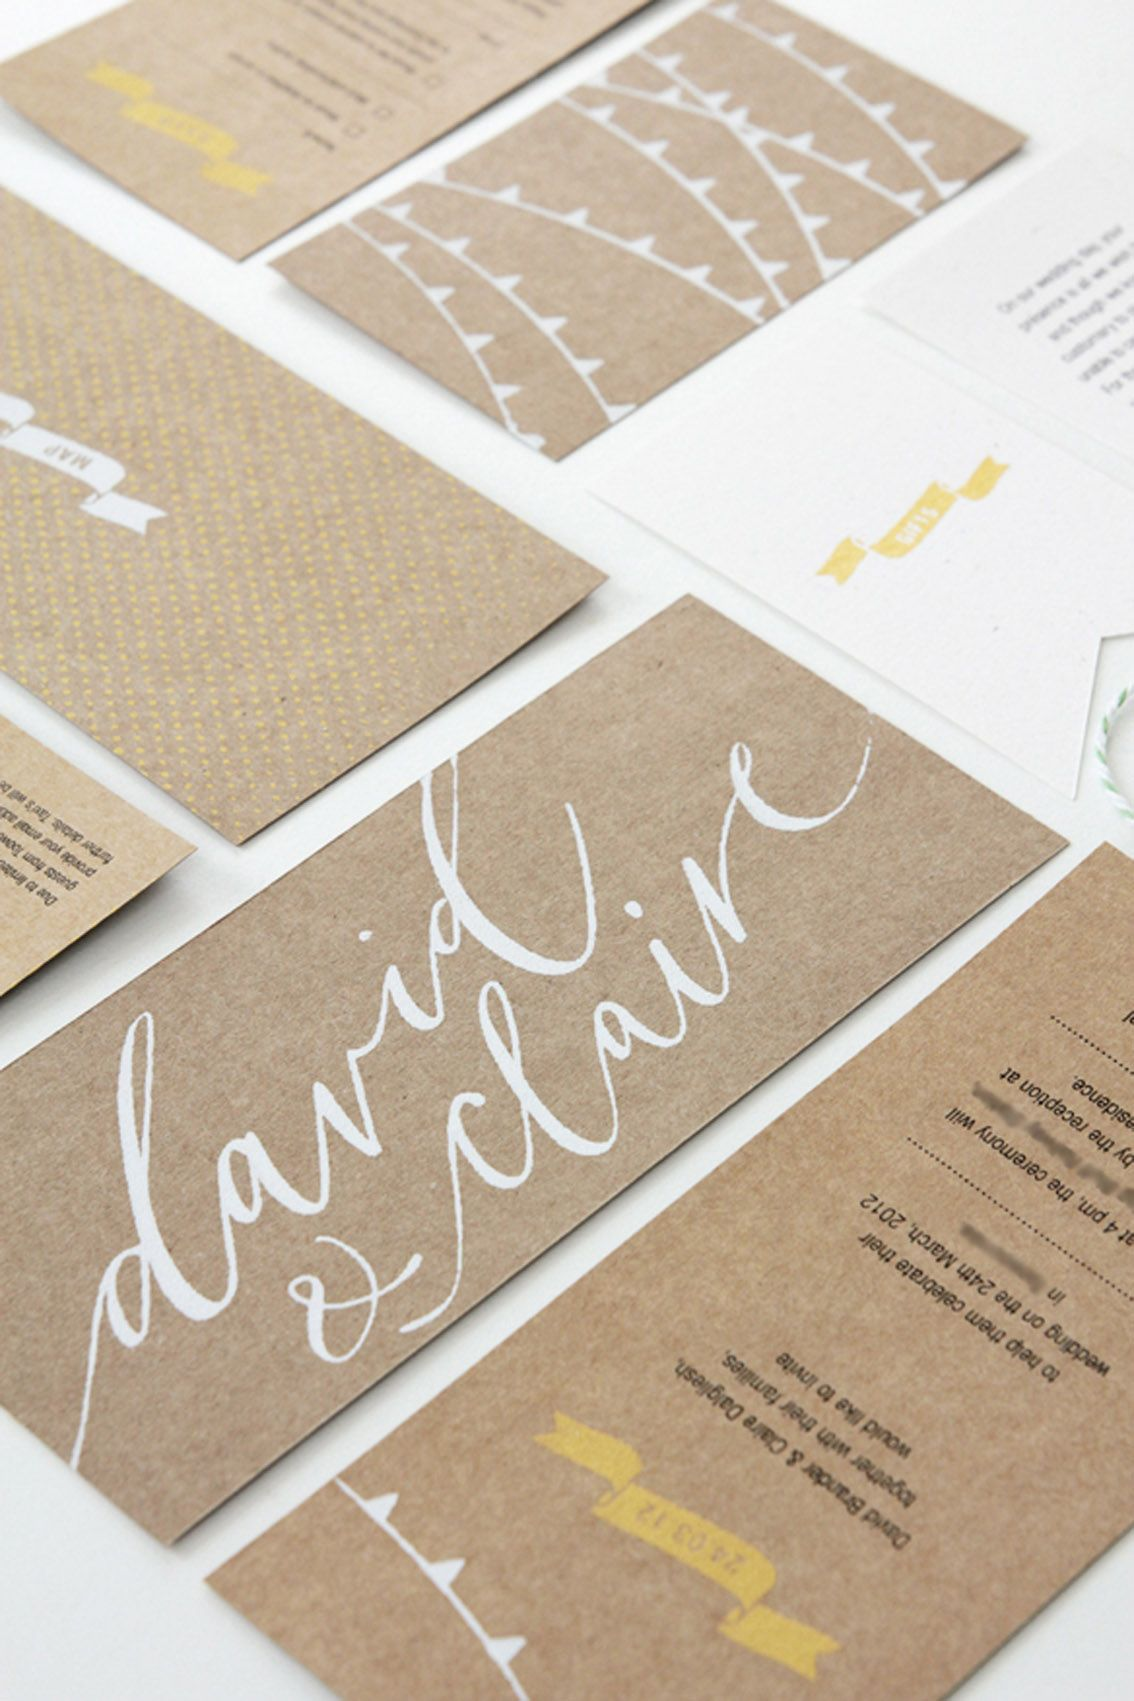 Natural business cards Graphic Design Pinterest